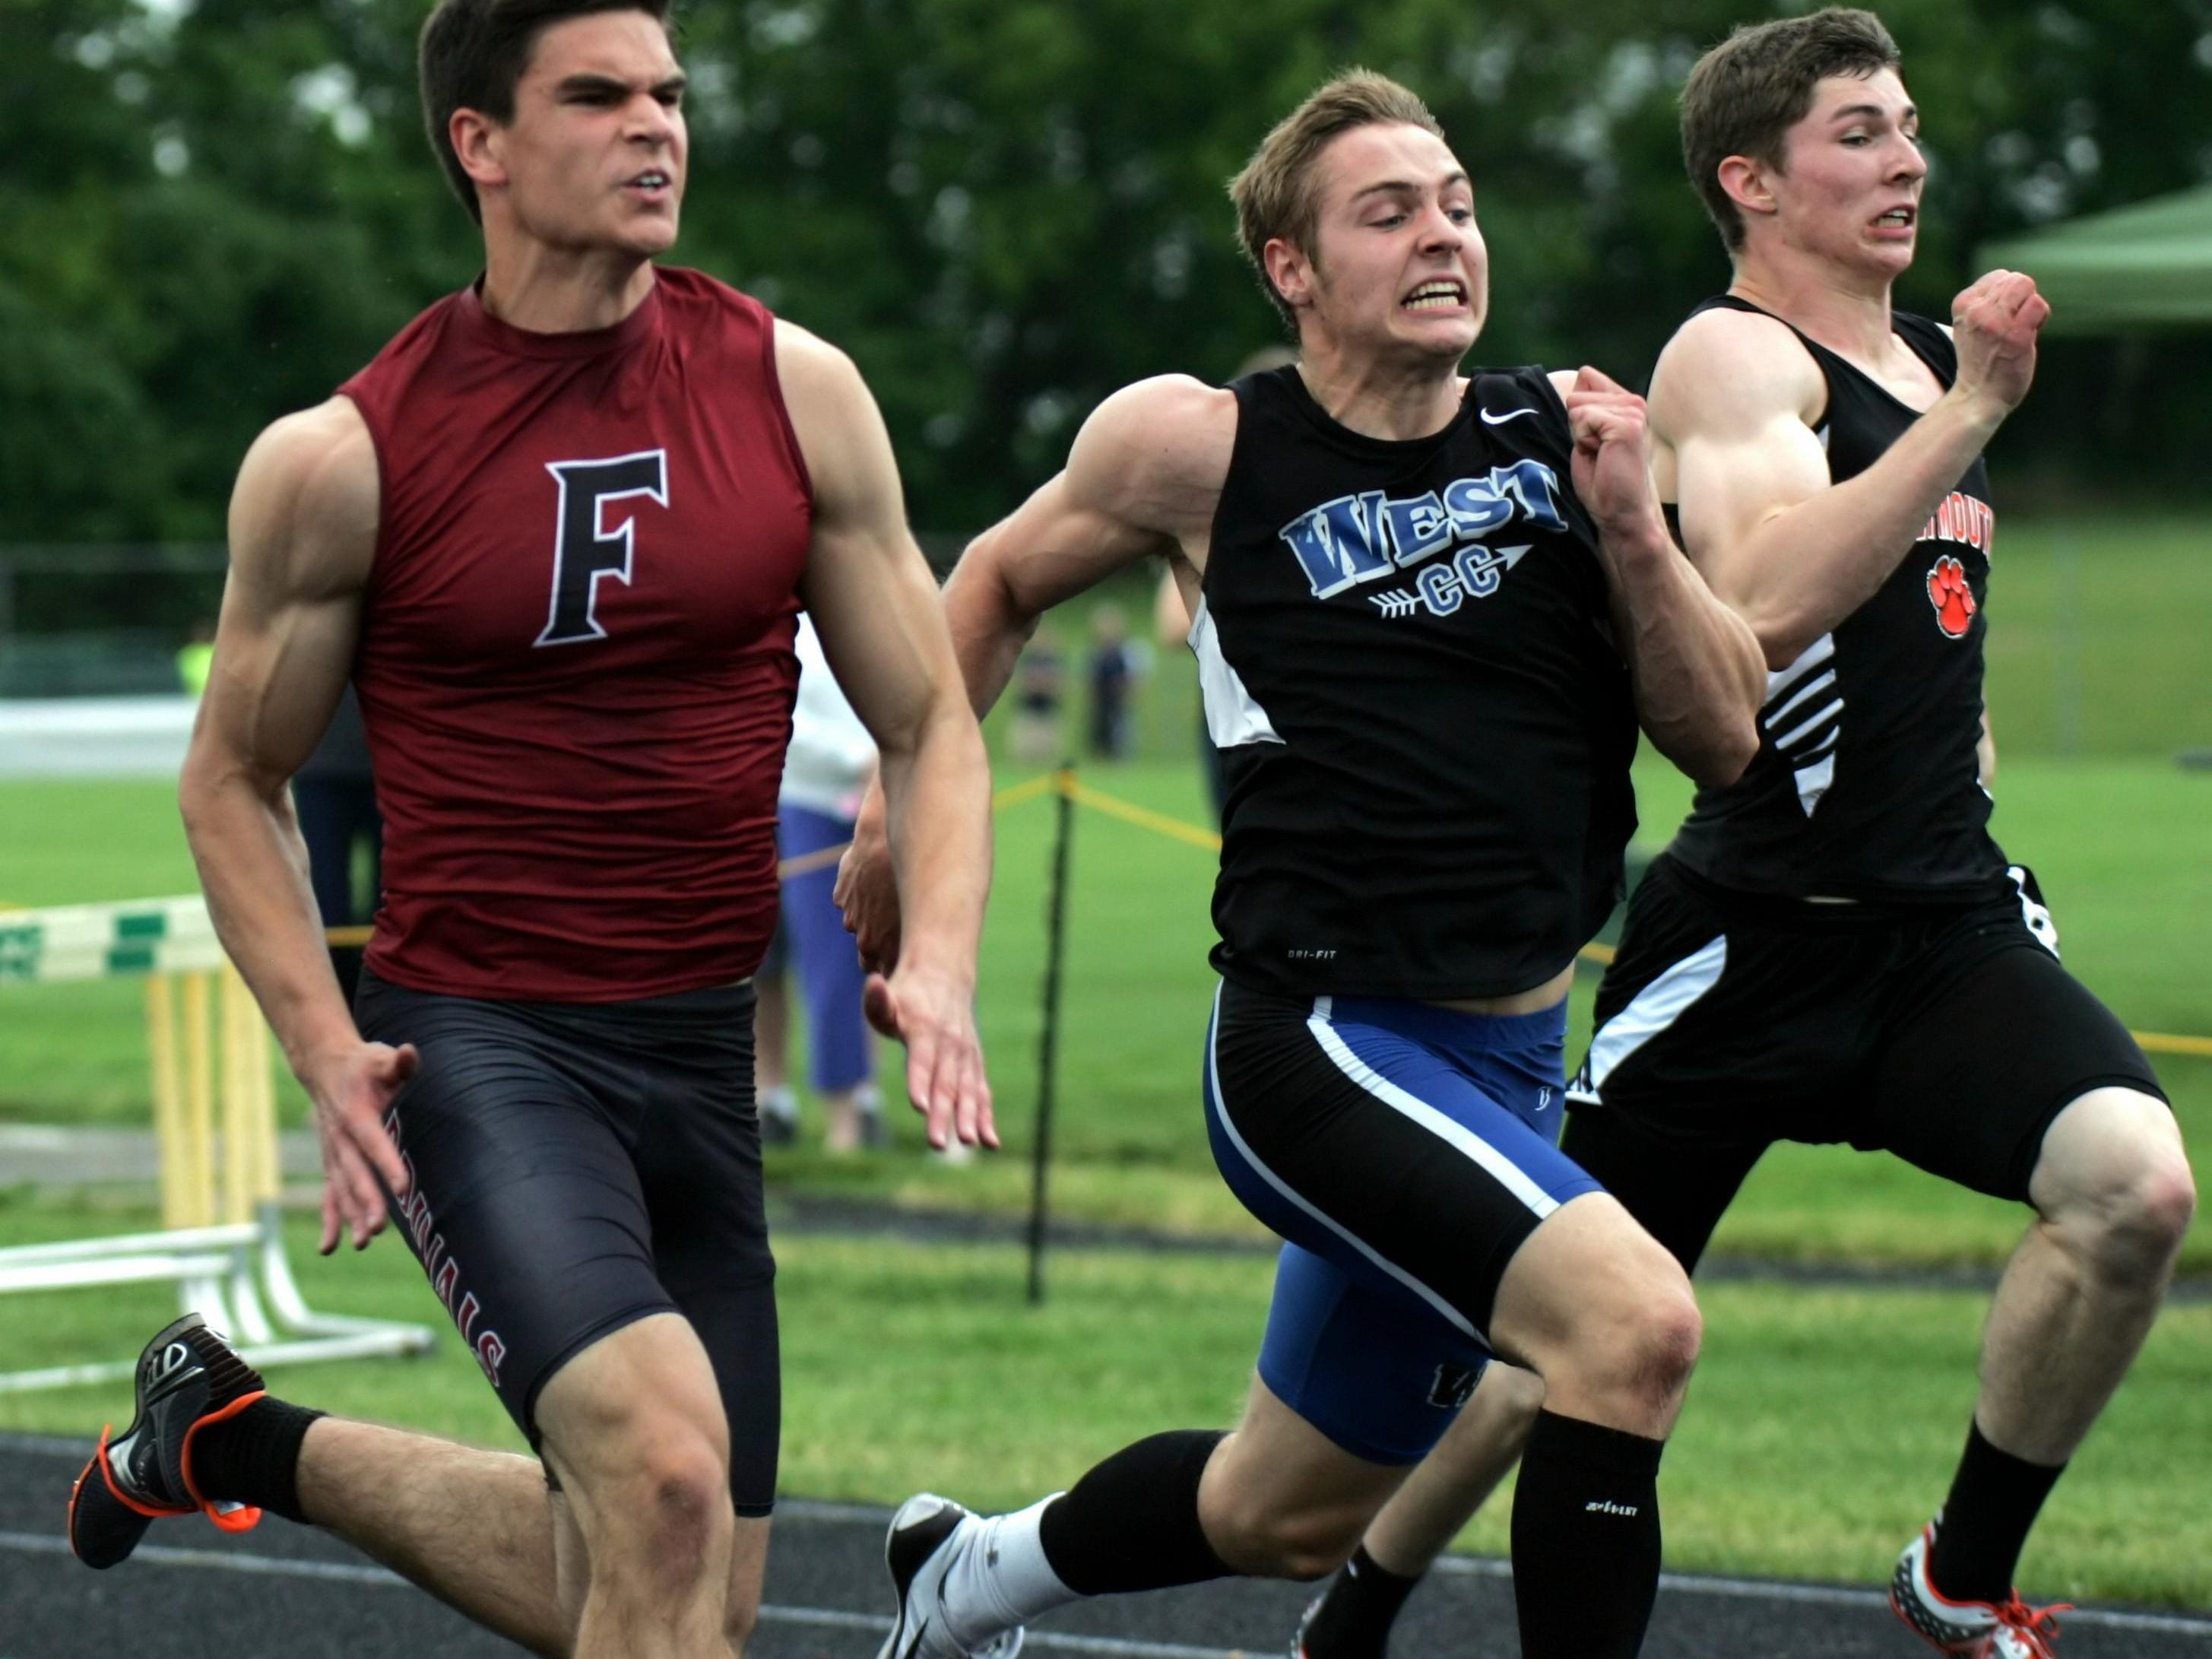 Fond du Lac's Nick Park (left) competes in the 100-meter dash in last Friday's Division 1 sectional track and field meet at Beaver Dam.